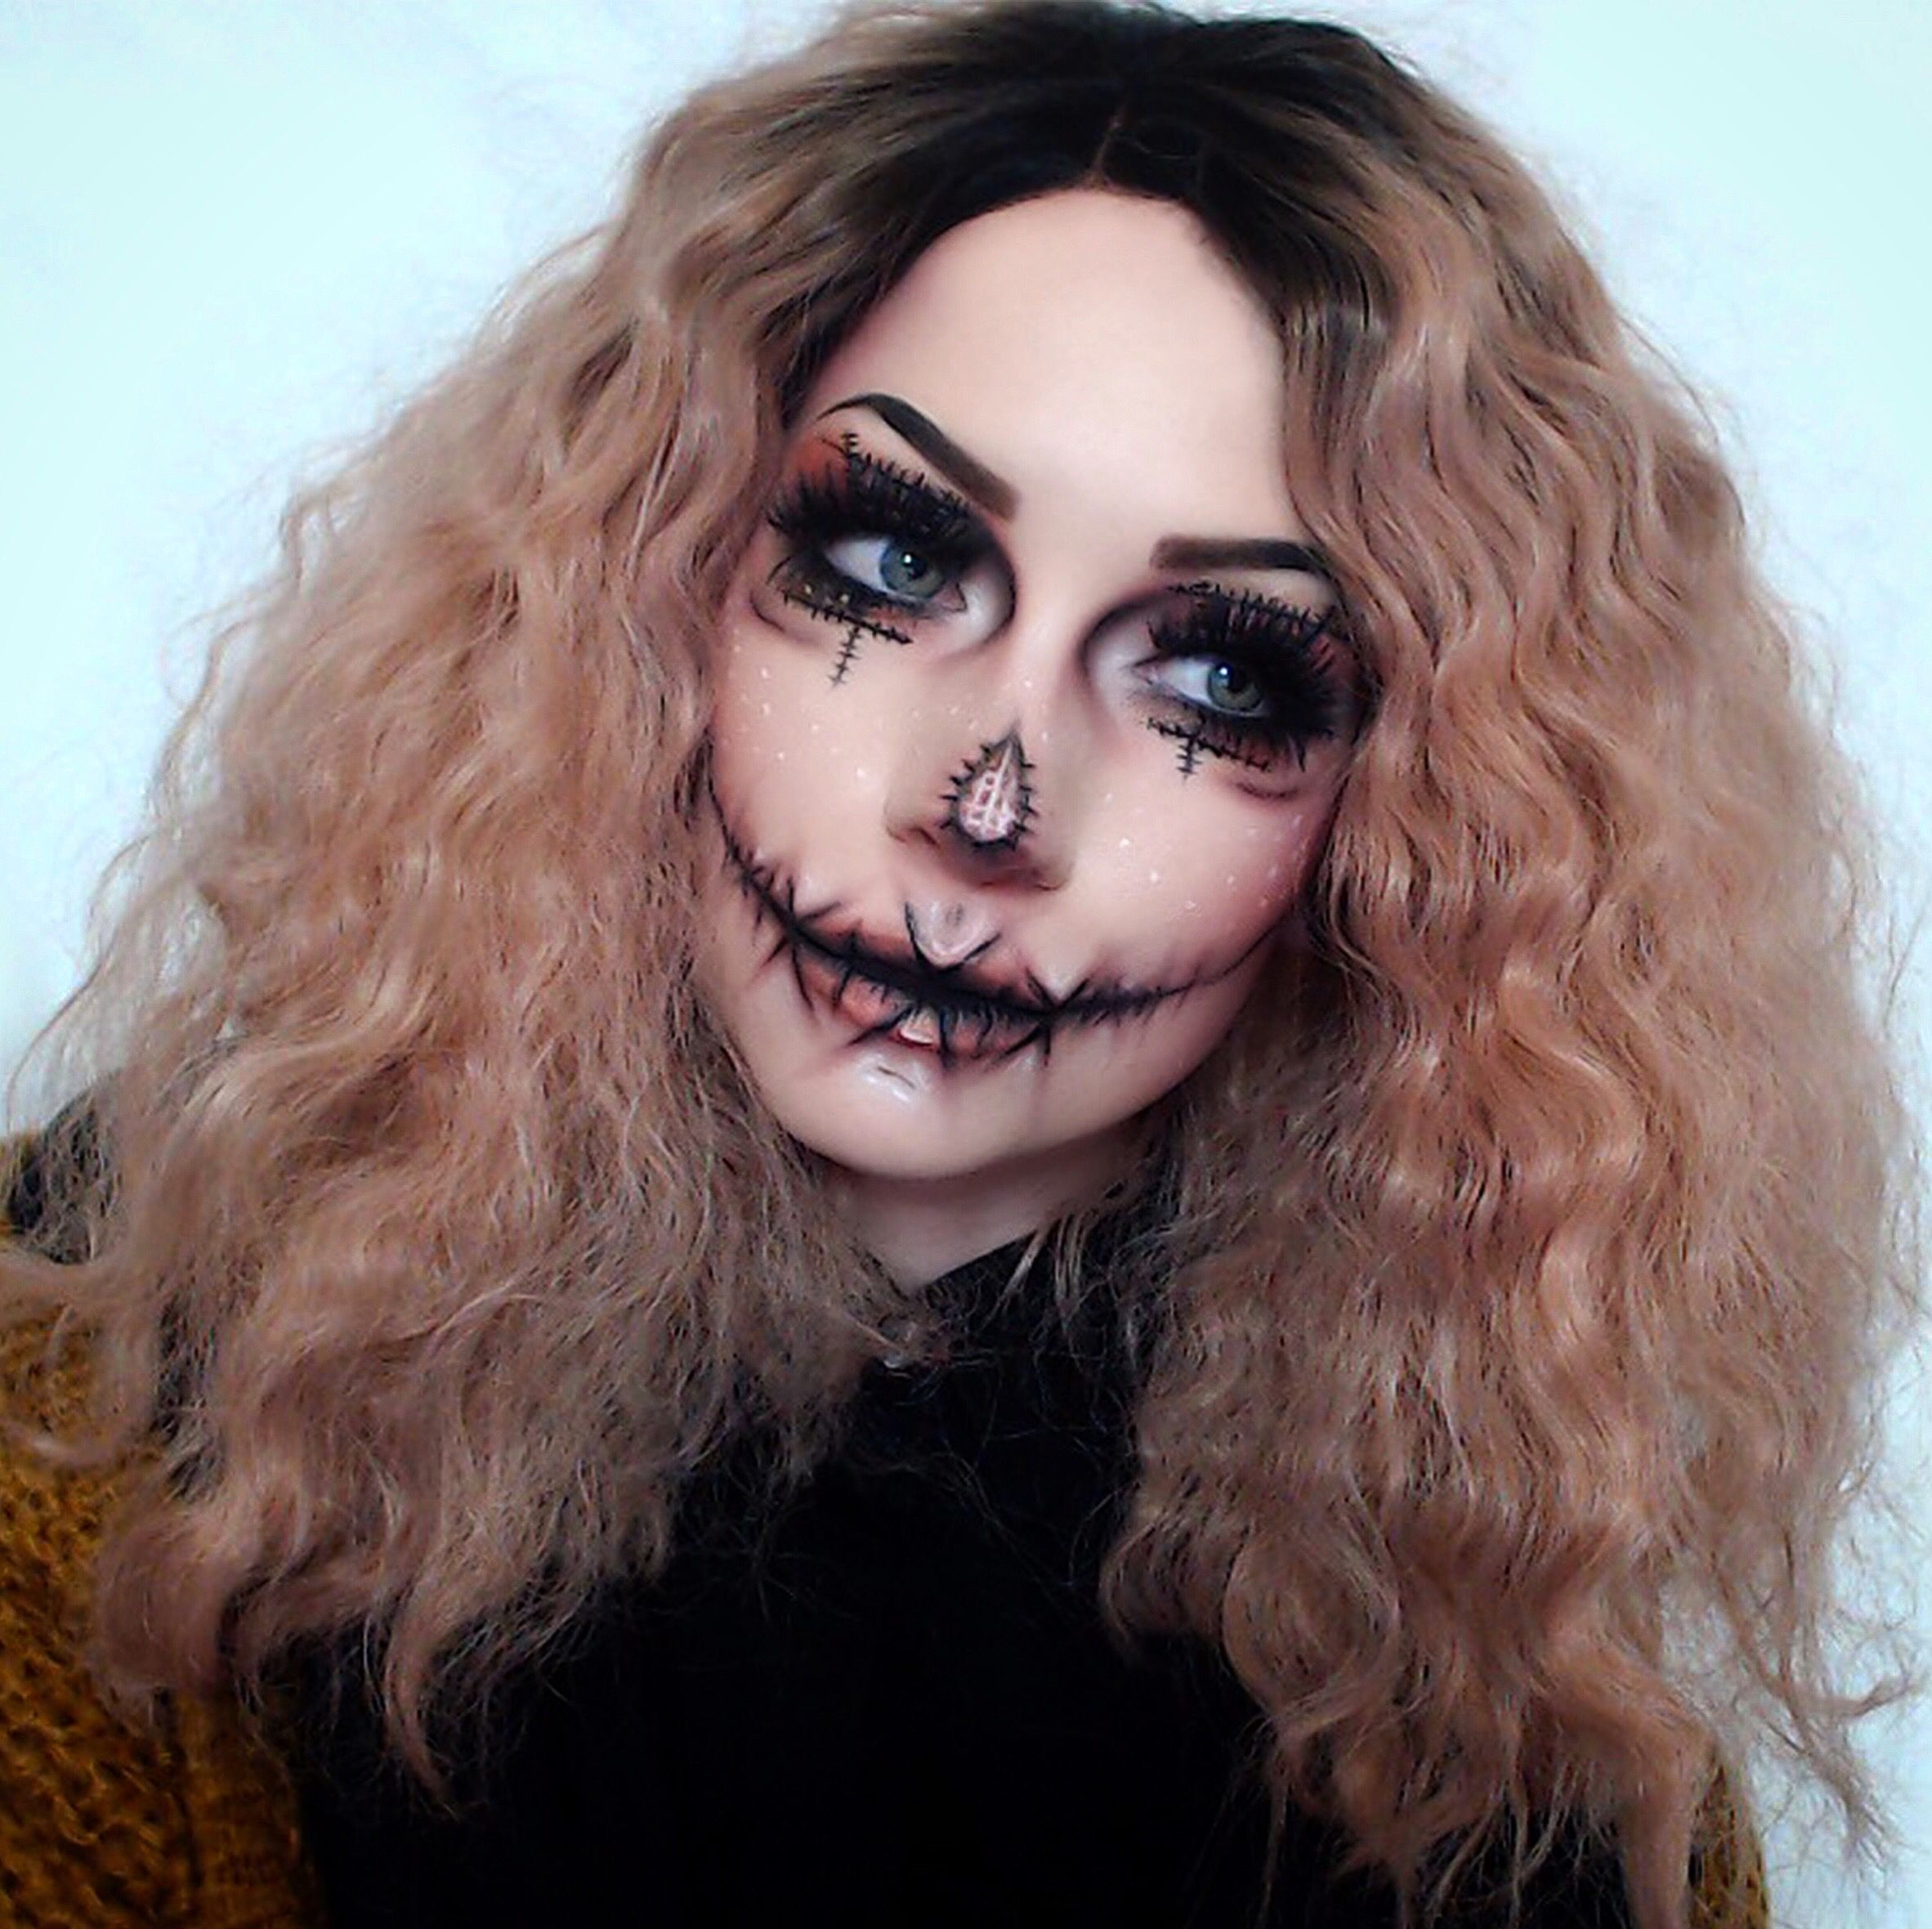 Cute creepy scarecrow Halloween makeup fx scary pretty